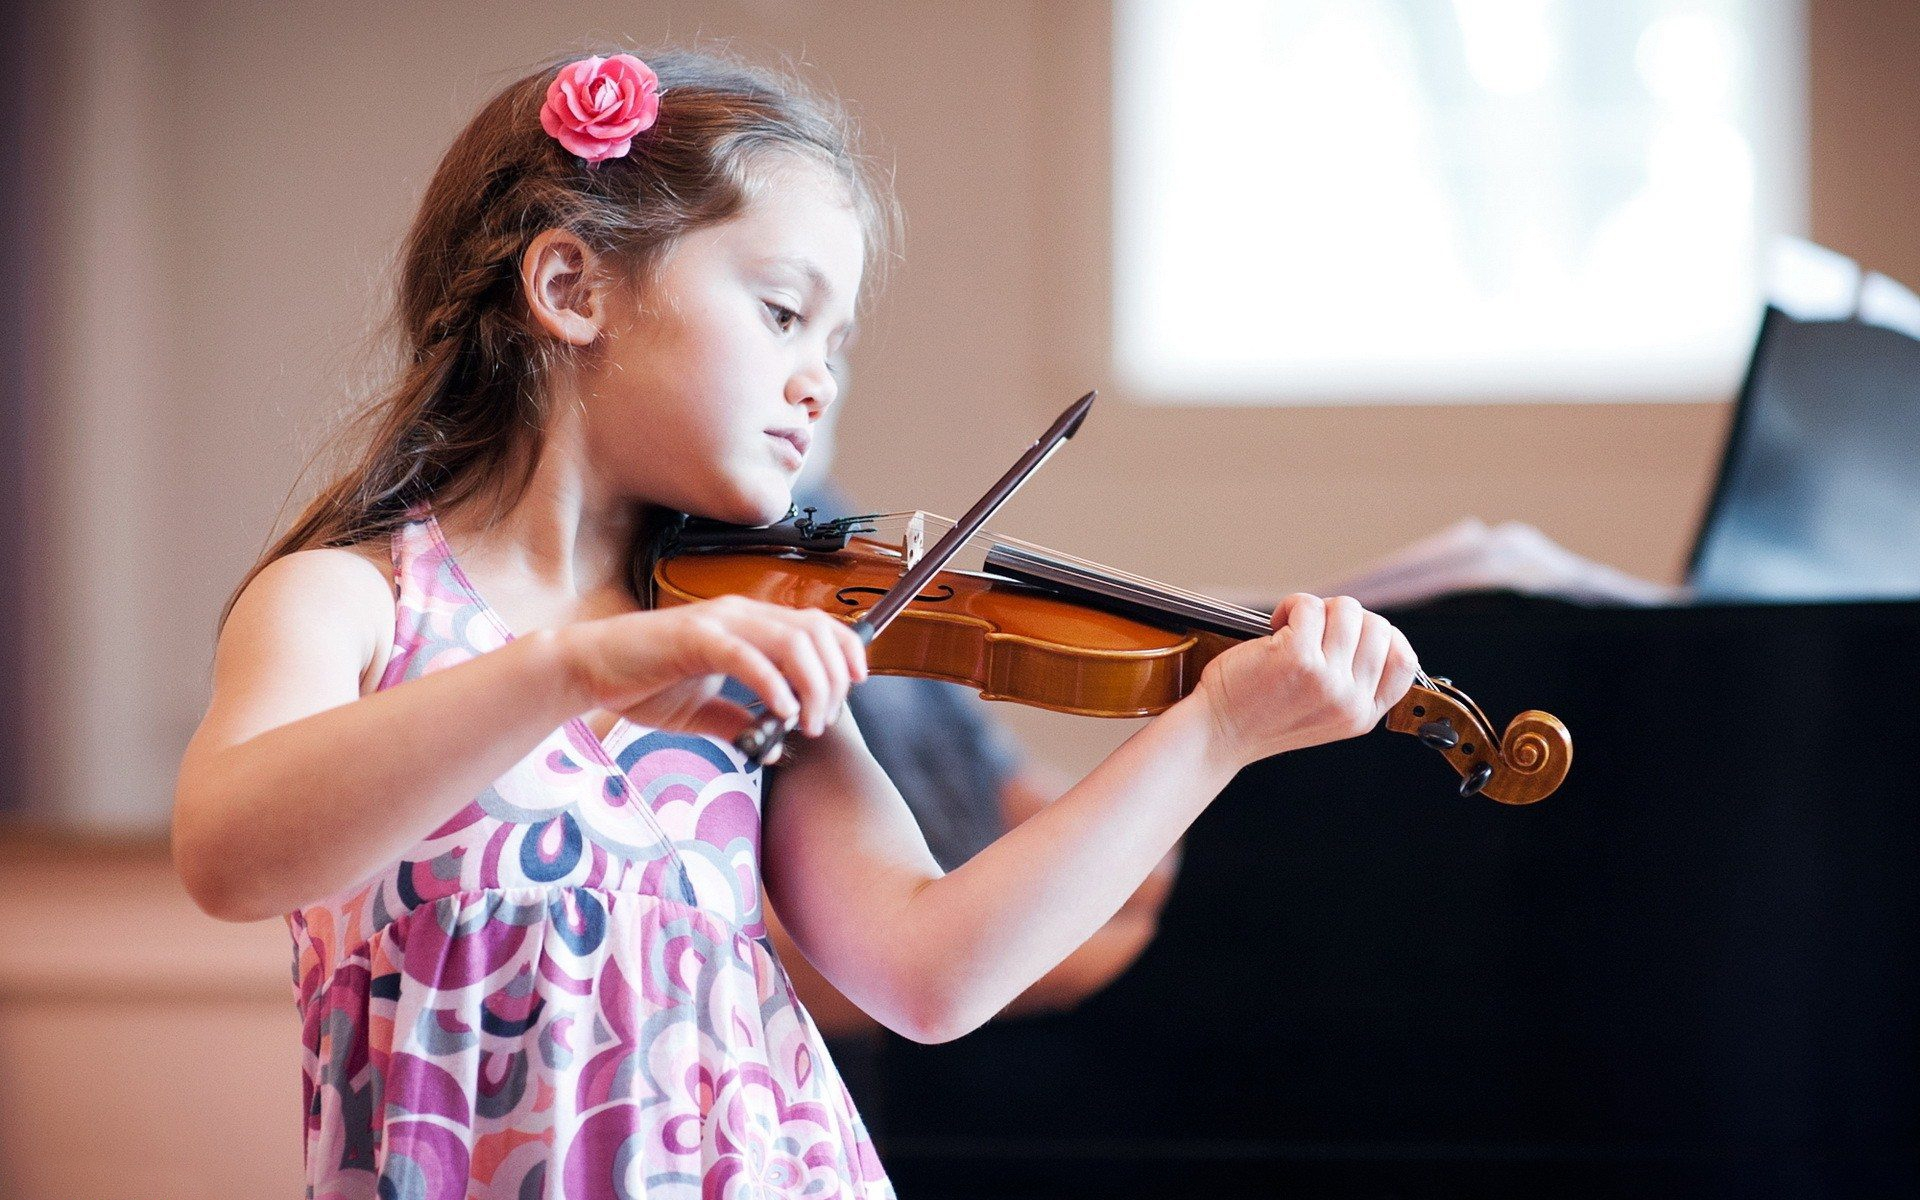 Girl-Child-Violin-Music1